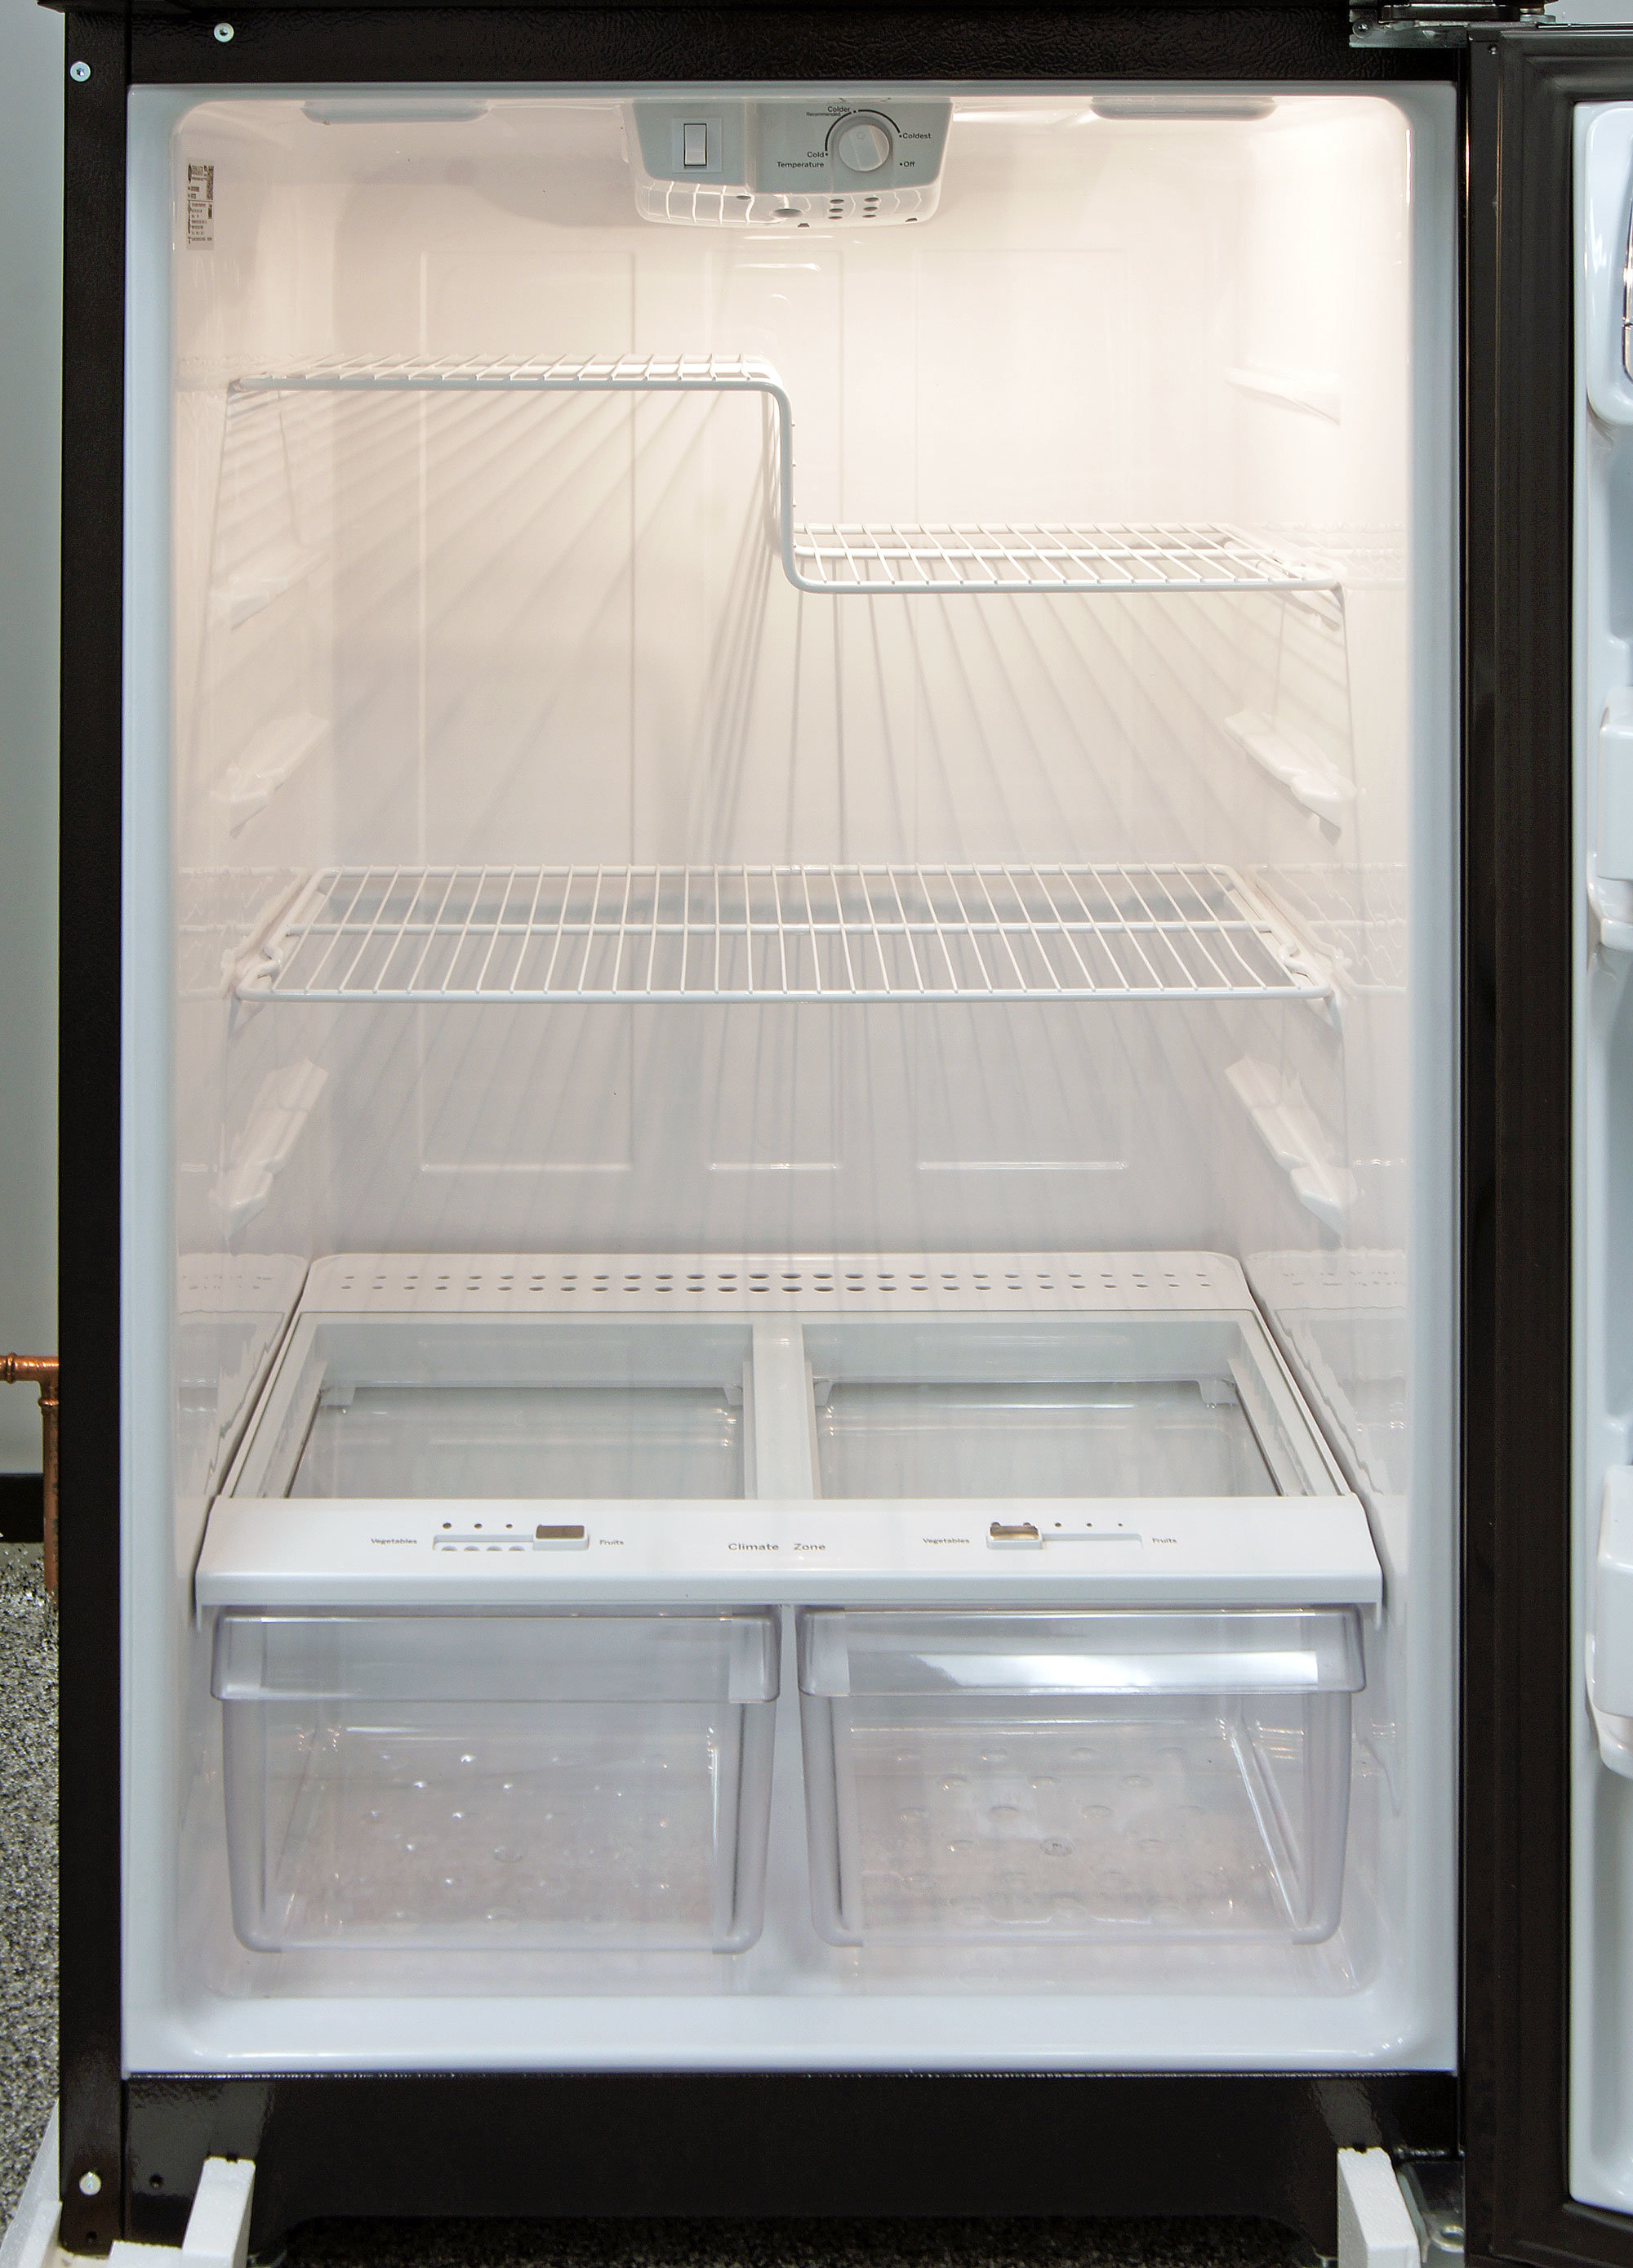 GE GIE16DGHBB Refrigerator Review - Reviewed.com Refrigerators